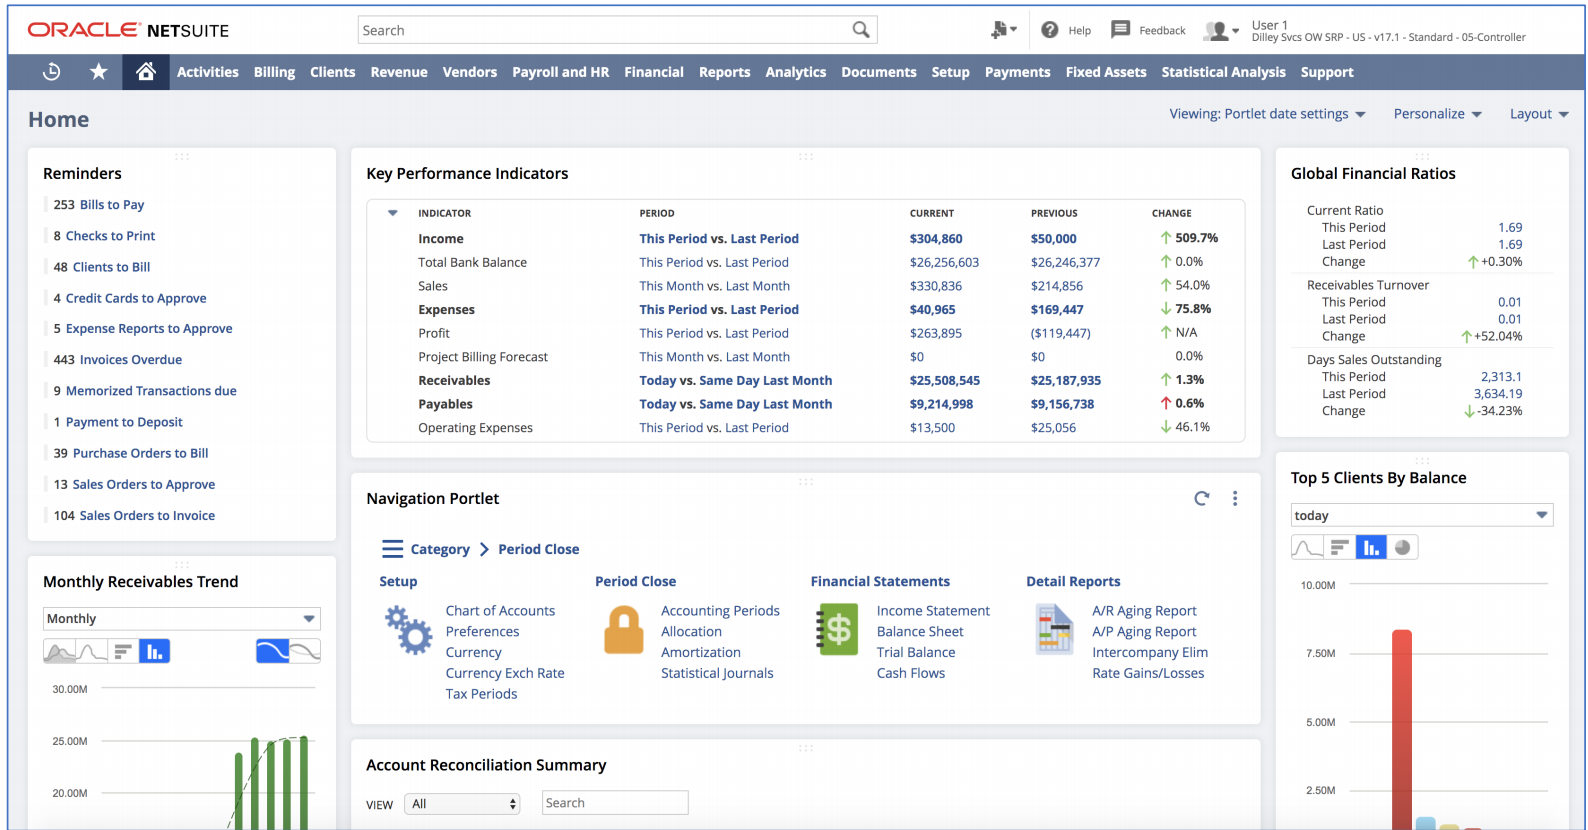 Example of a financial dashboard in NetSuite, showing reminders, KPIs, navigation portlet, and monthly receivables trend.